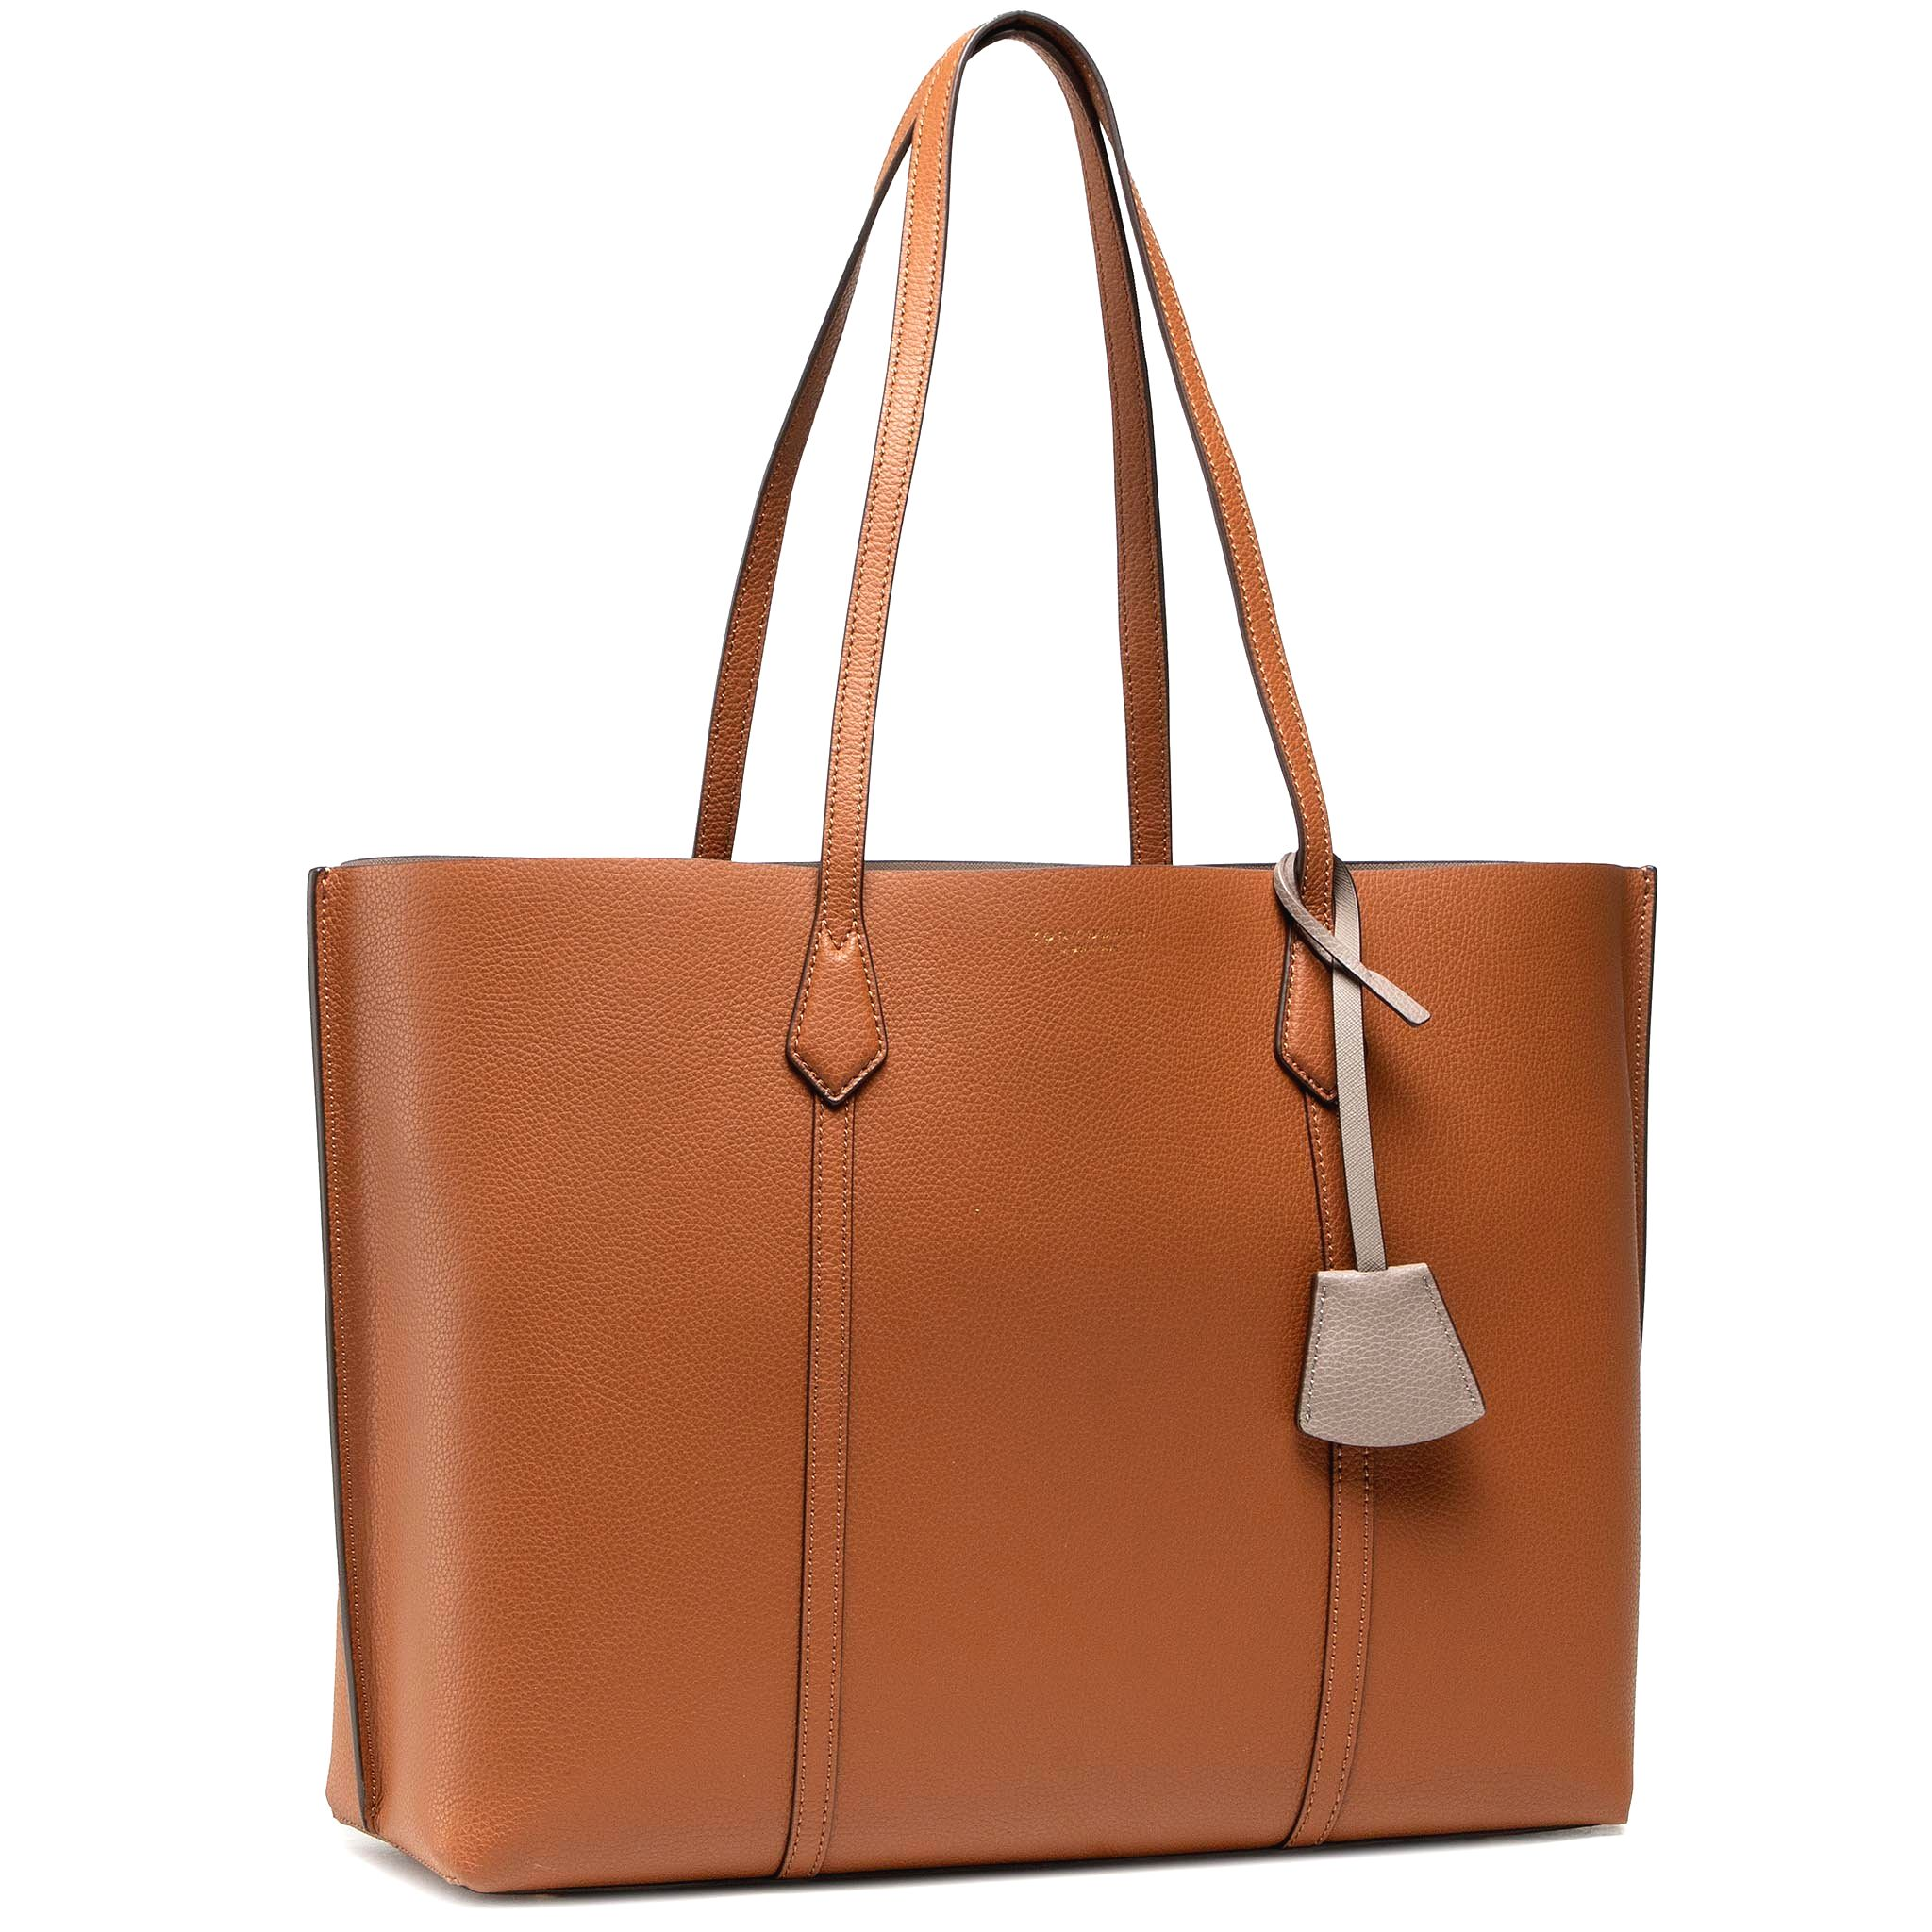 Kabelka TORY BURCH - Perry Triple - Compartment Tote 8192 Light Umber 905